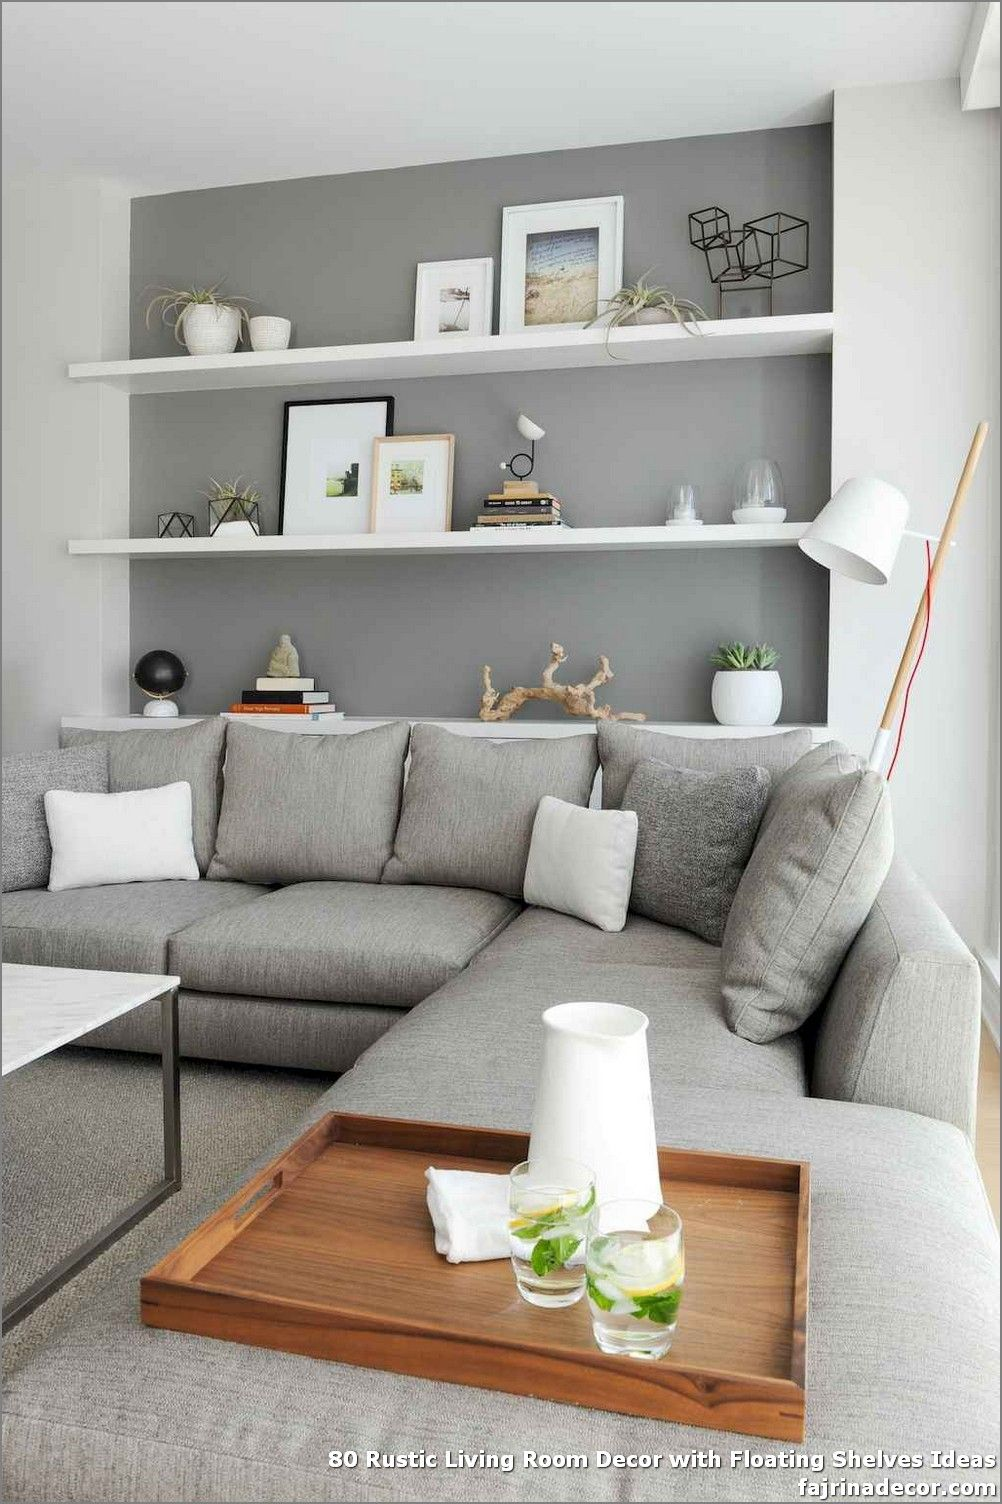 80 Rustic Living Room Decor With Floating Shelves Ideas In 2020 Living Room Shelves Living Room Decor Rustic Floating Shelves Living Room #rustic #living #room #shelf